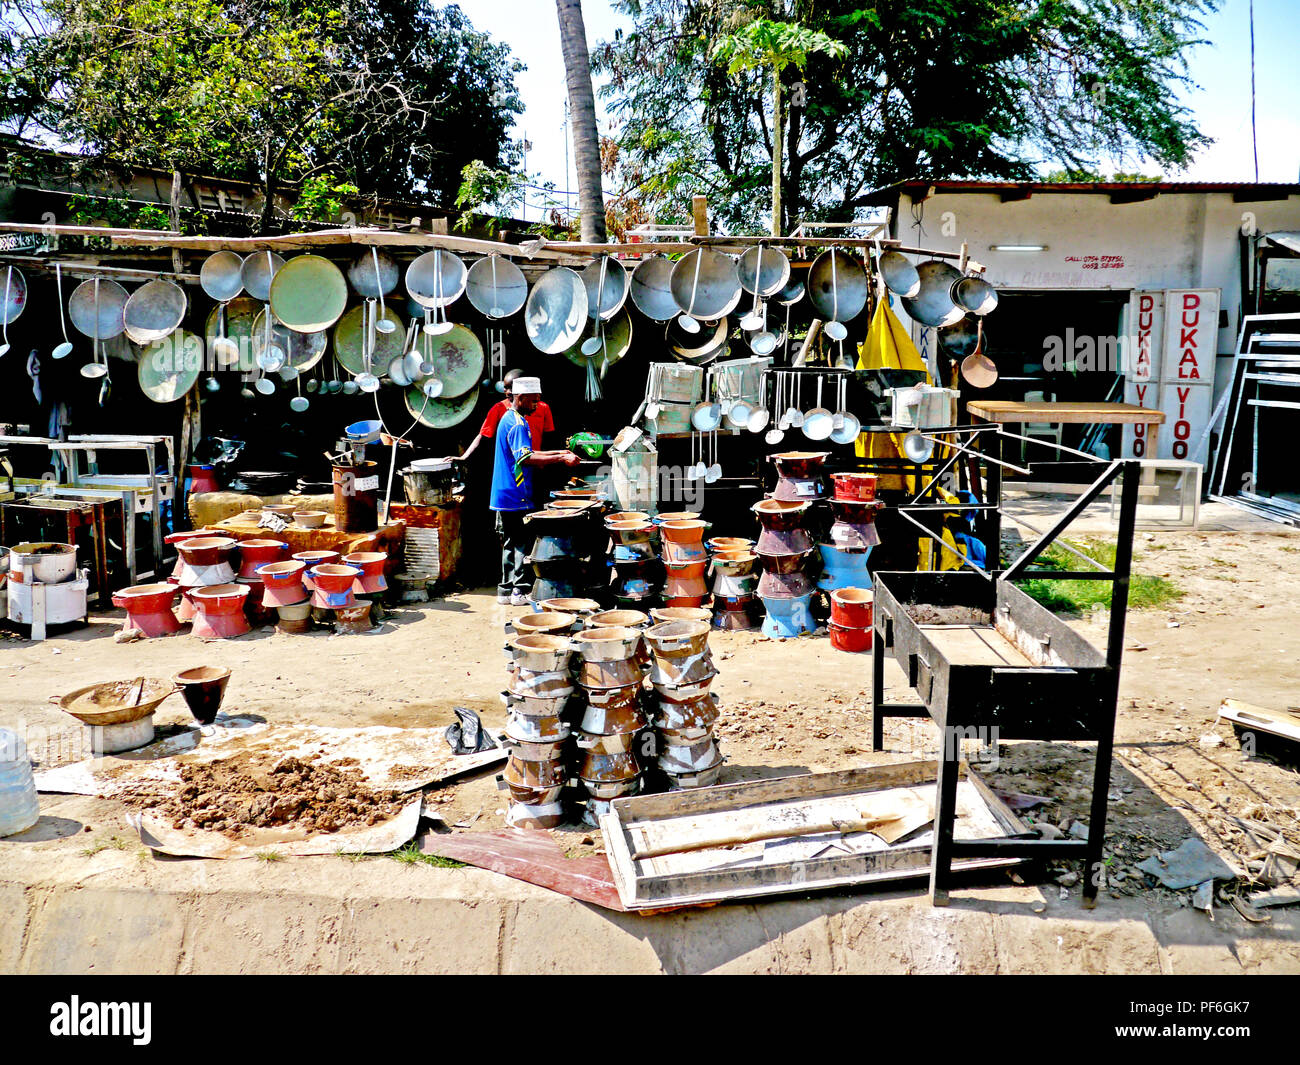 A street market for pots, pans and kitchen equipment by the roadside in Dar es Salaam, Tanzania, Africa - Stock Image